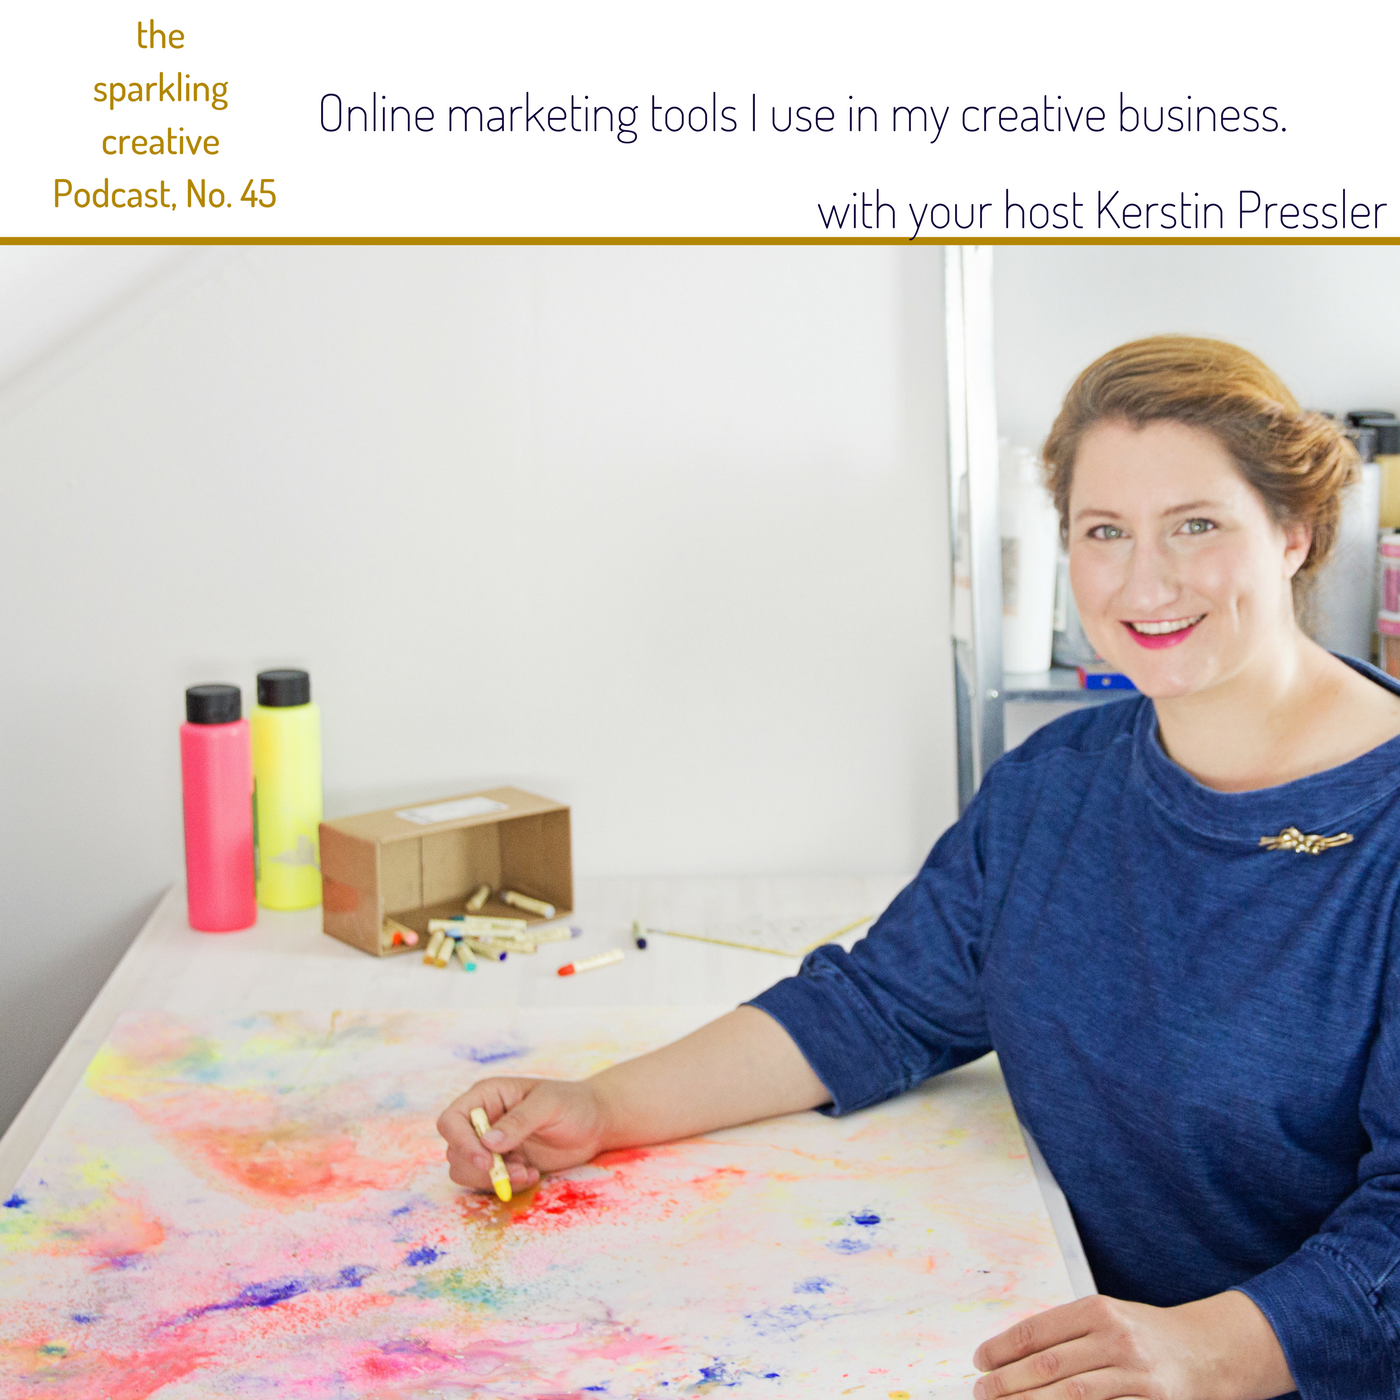 Artwork for Episode 45: online marketing tools I use in my creative business